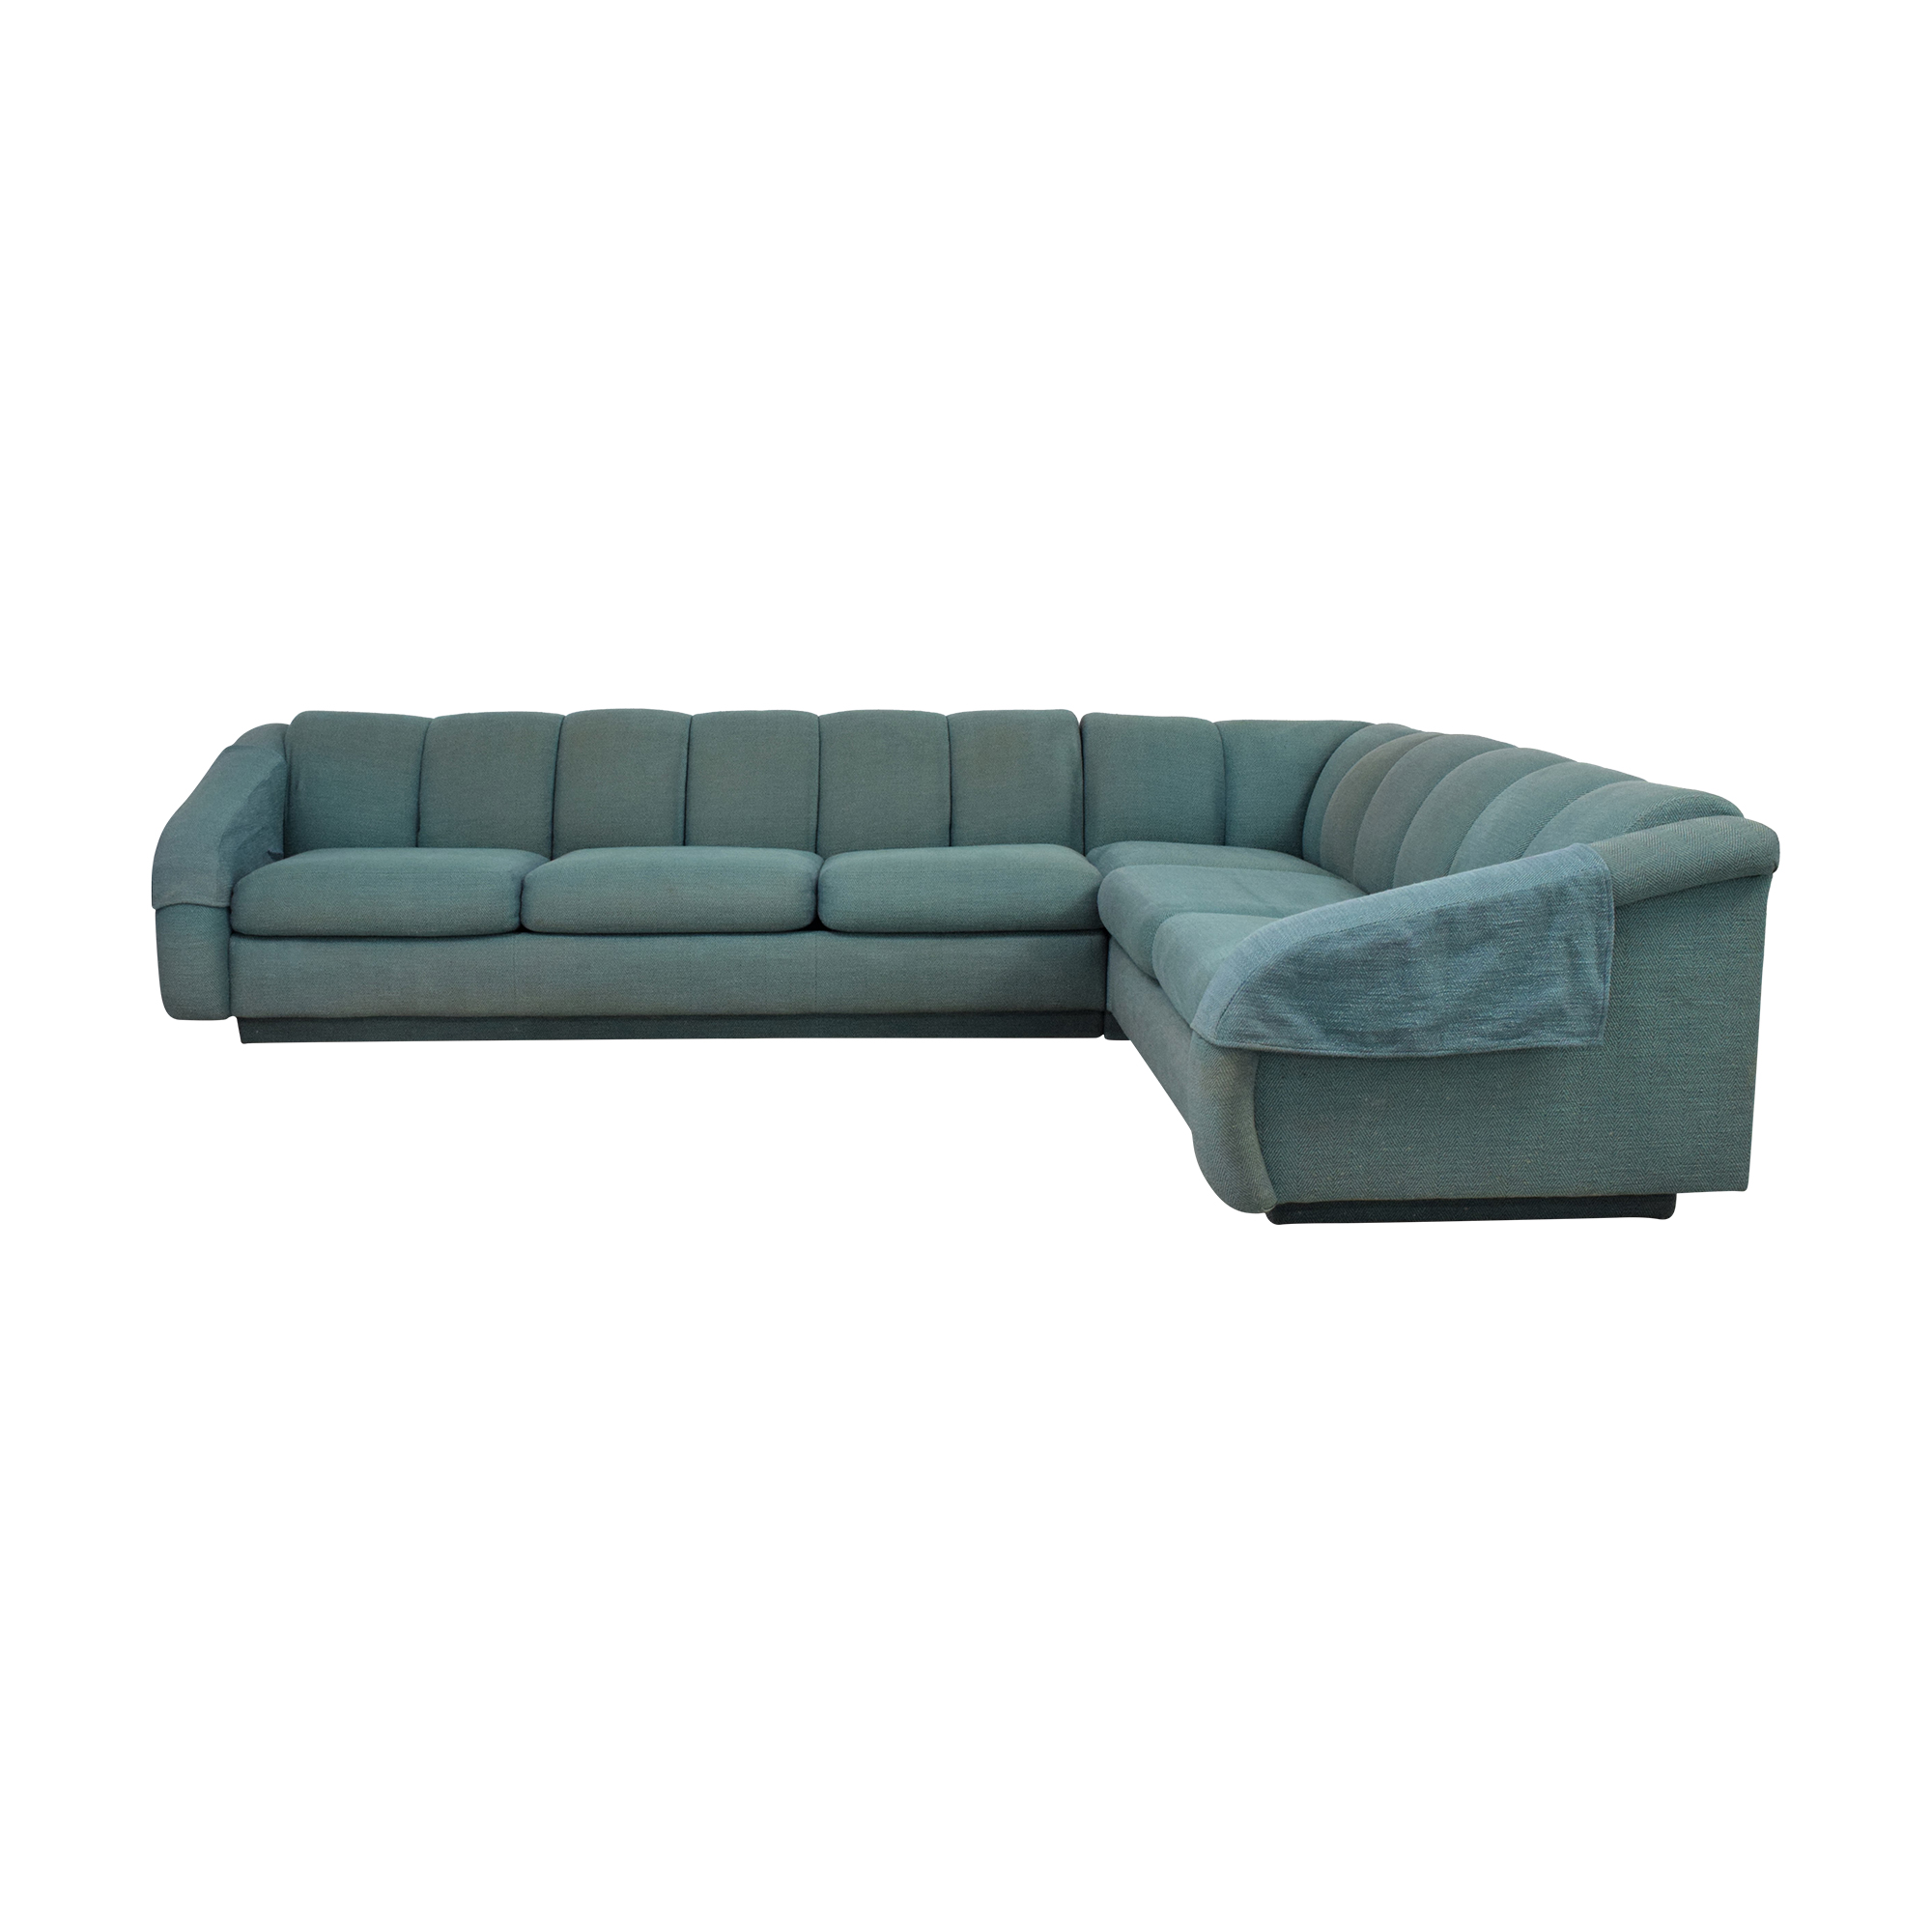 shop Directional Furniture Sectional Sofa Directional Furniture Sofas